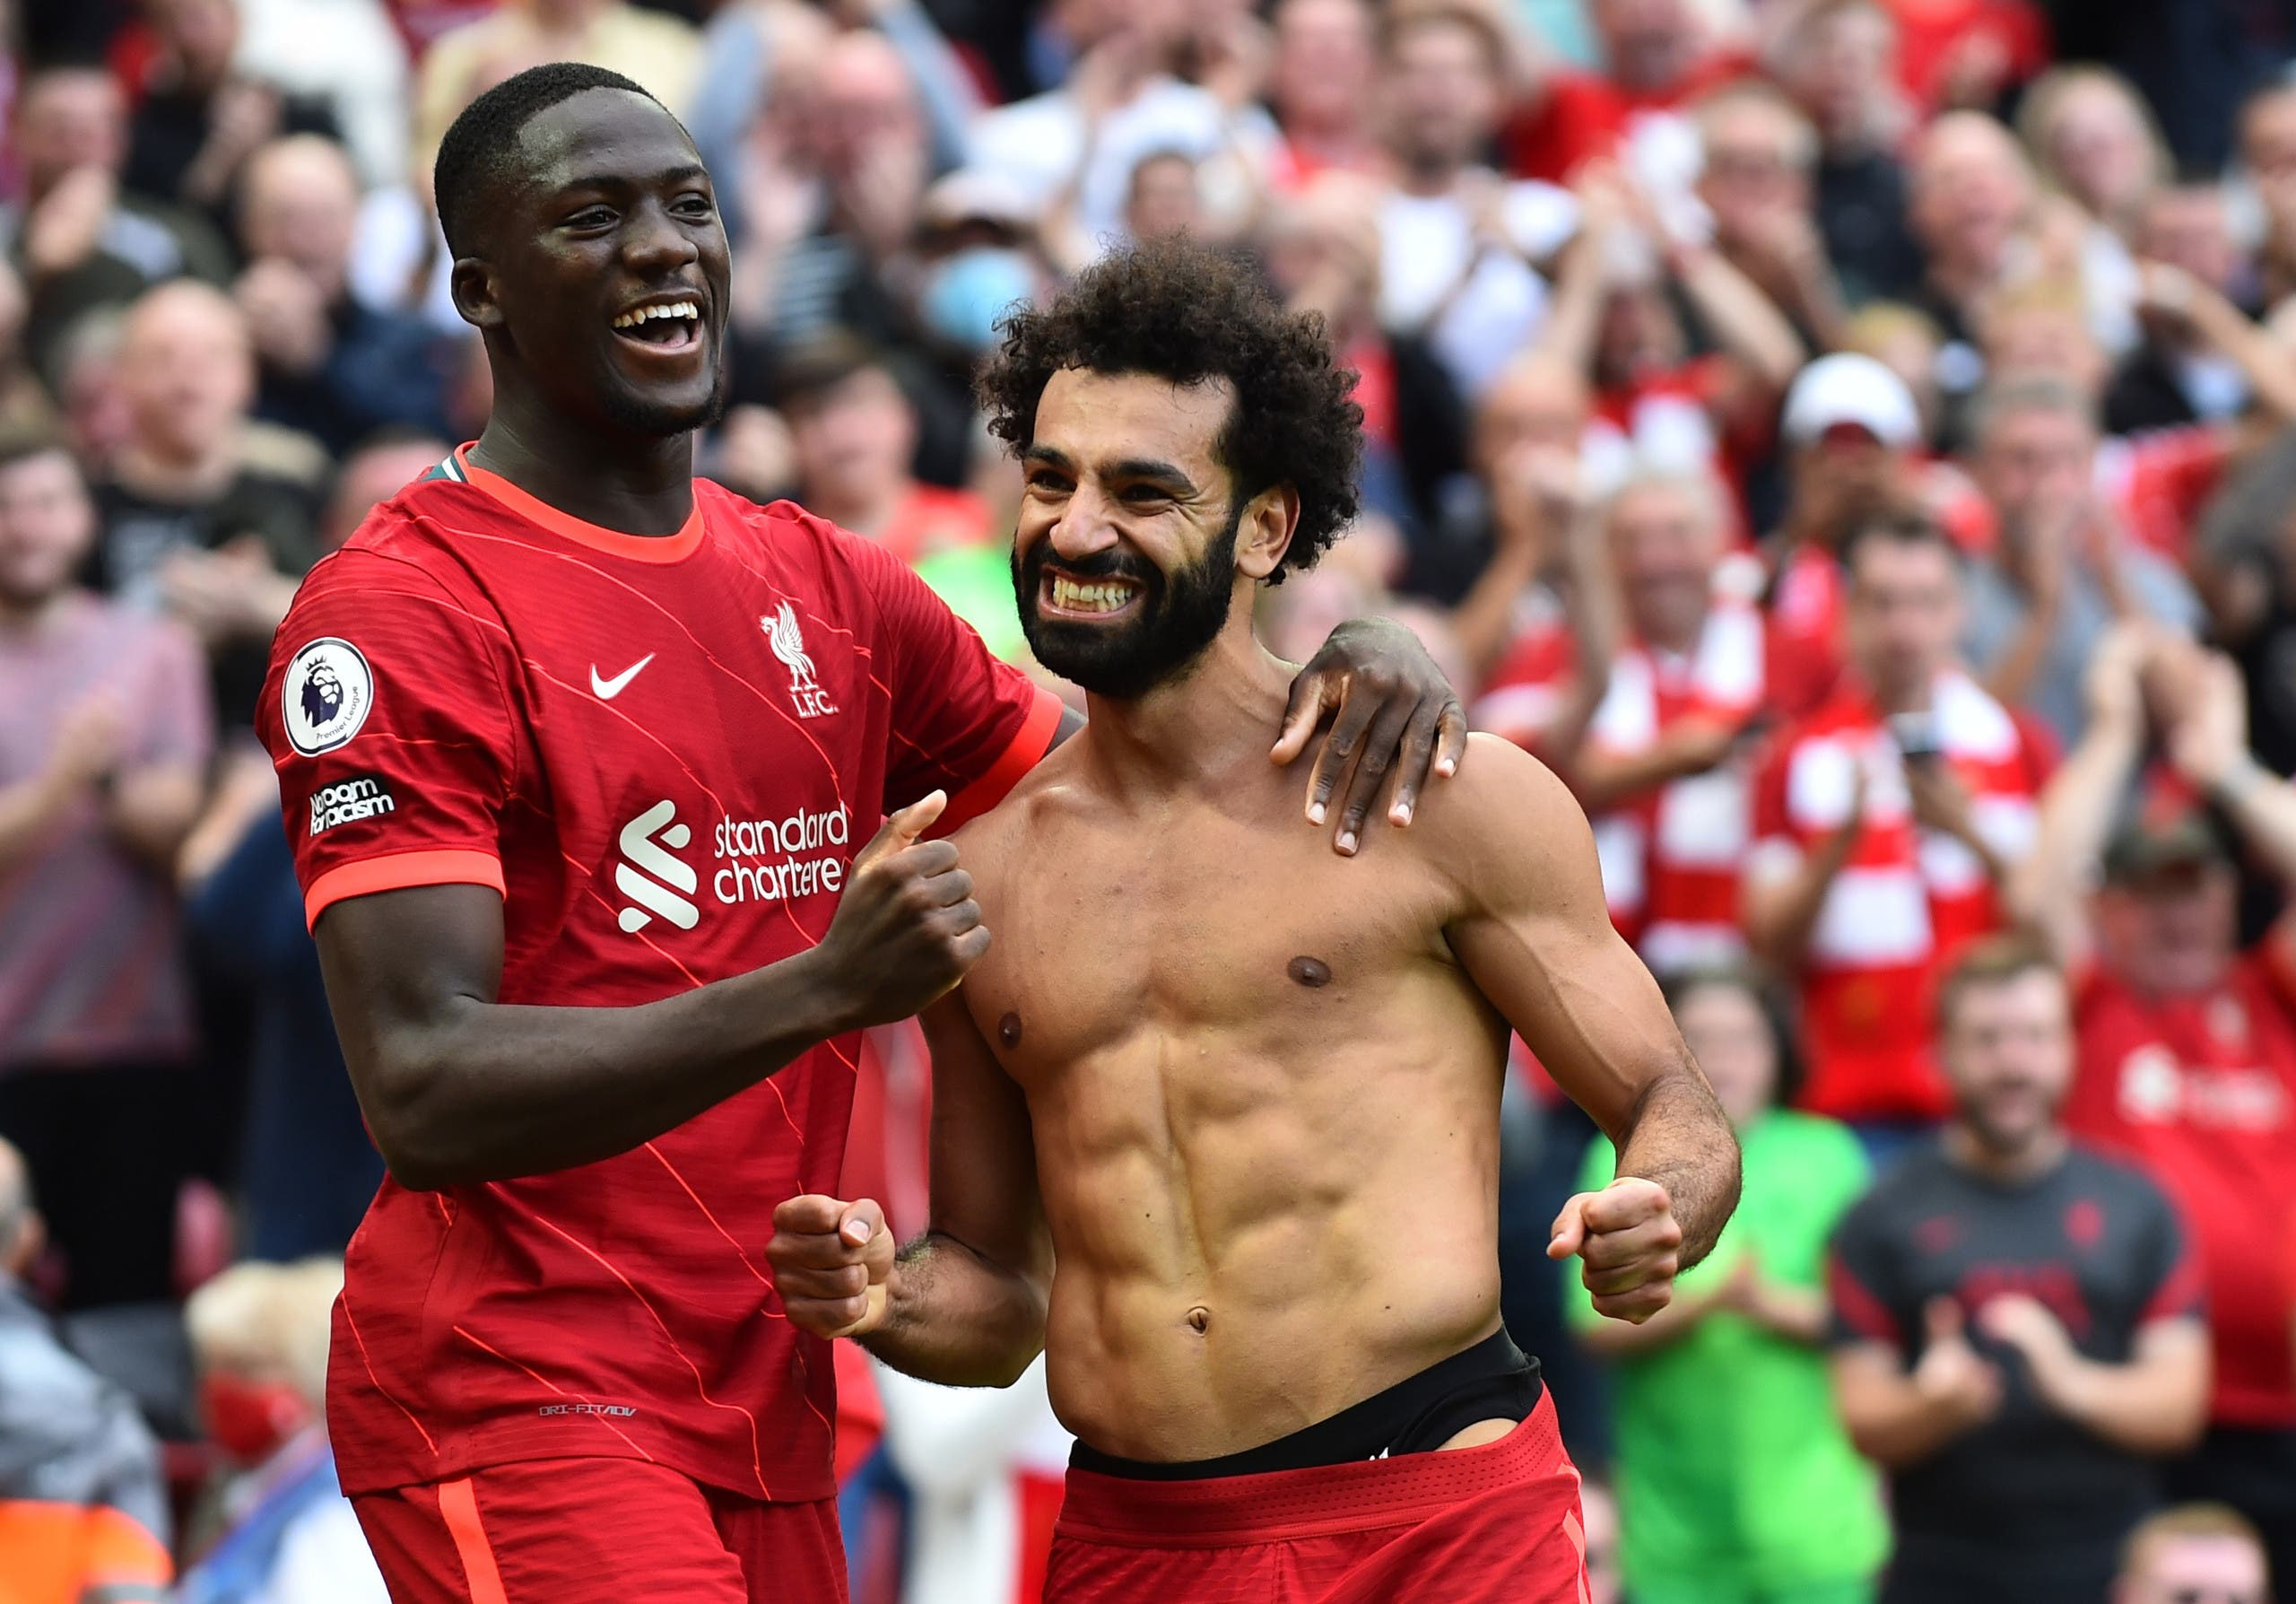 Mohamed Salah after scoring the second goal for Liverpool